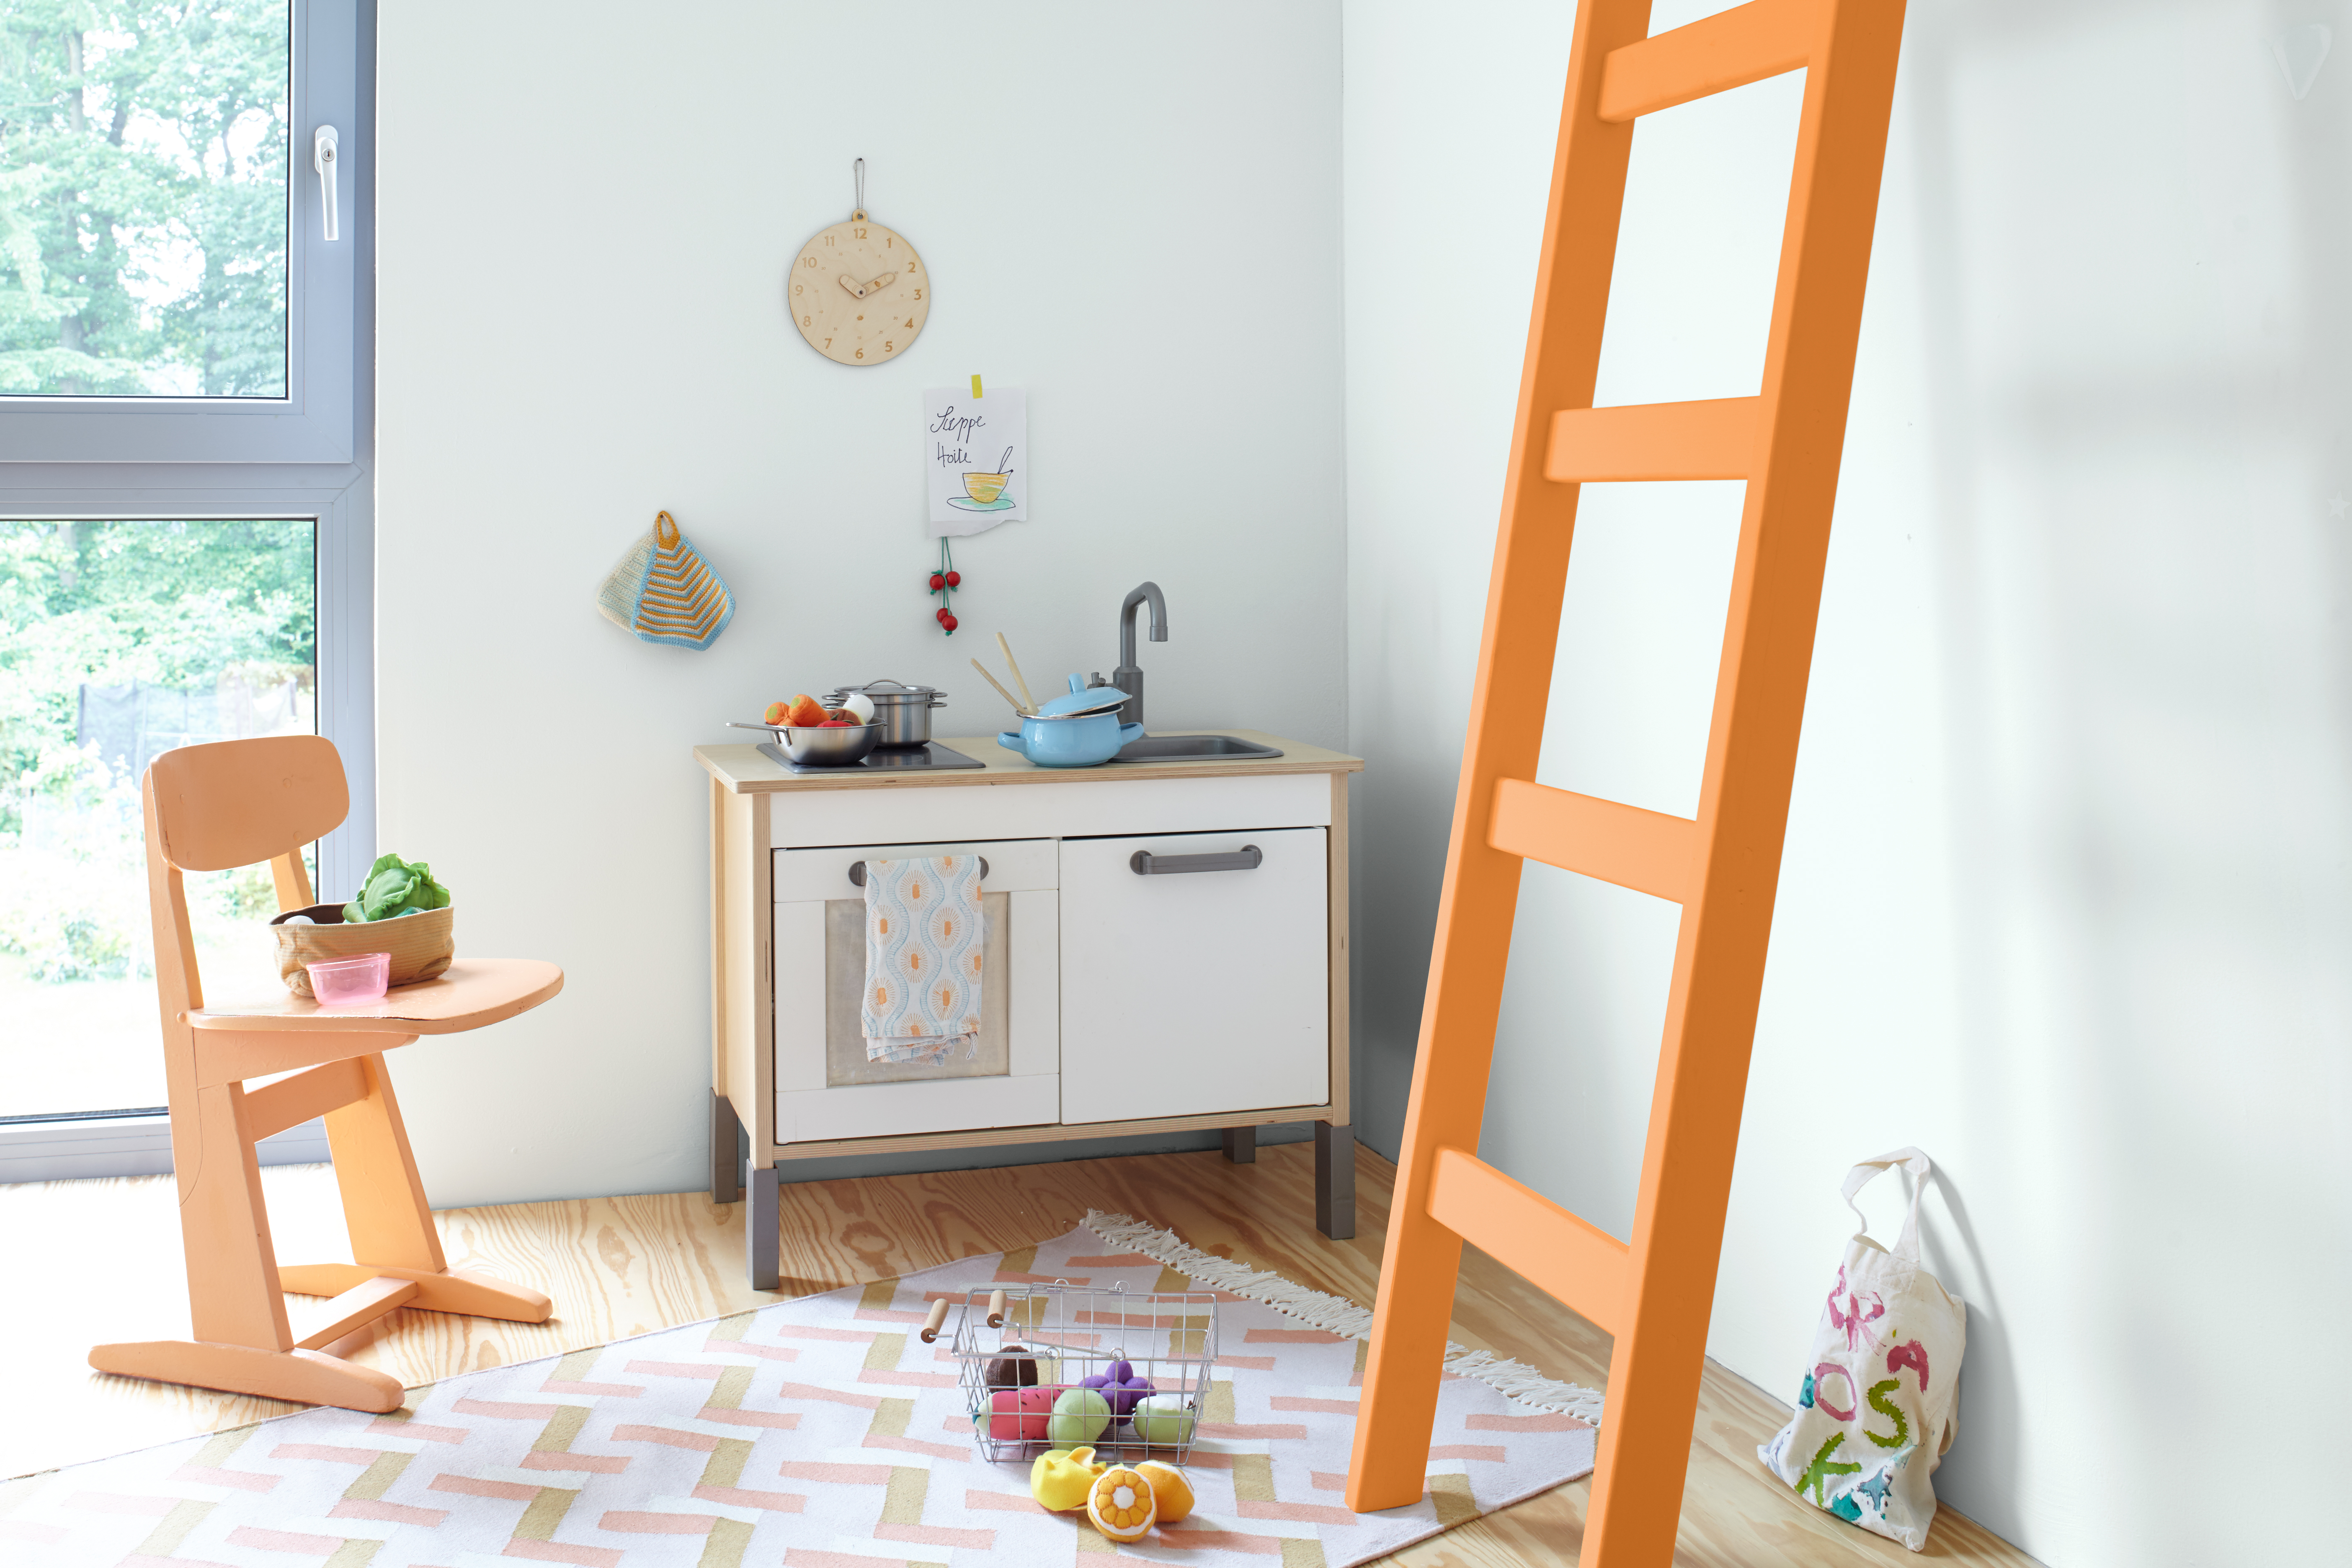 wandgestaltung in babyzimmer und kinderzimmer. Black Bedroom Furniture Sets. Home Design Ideas